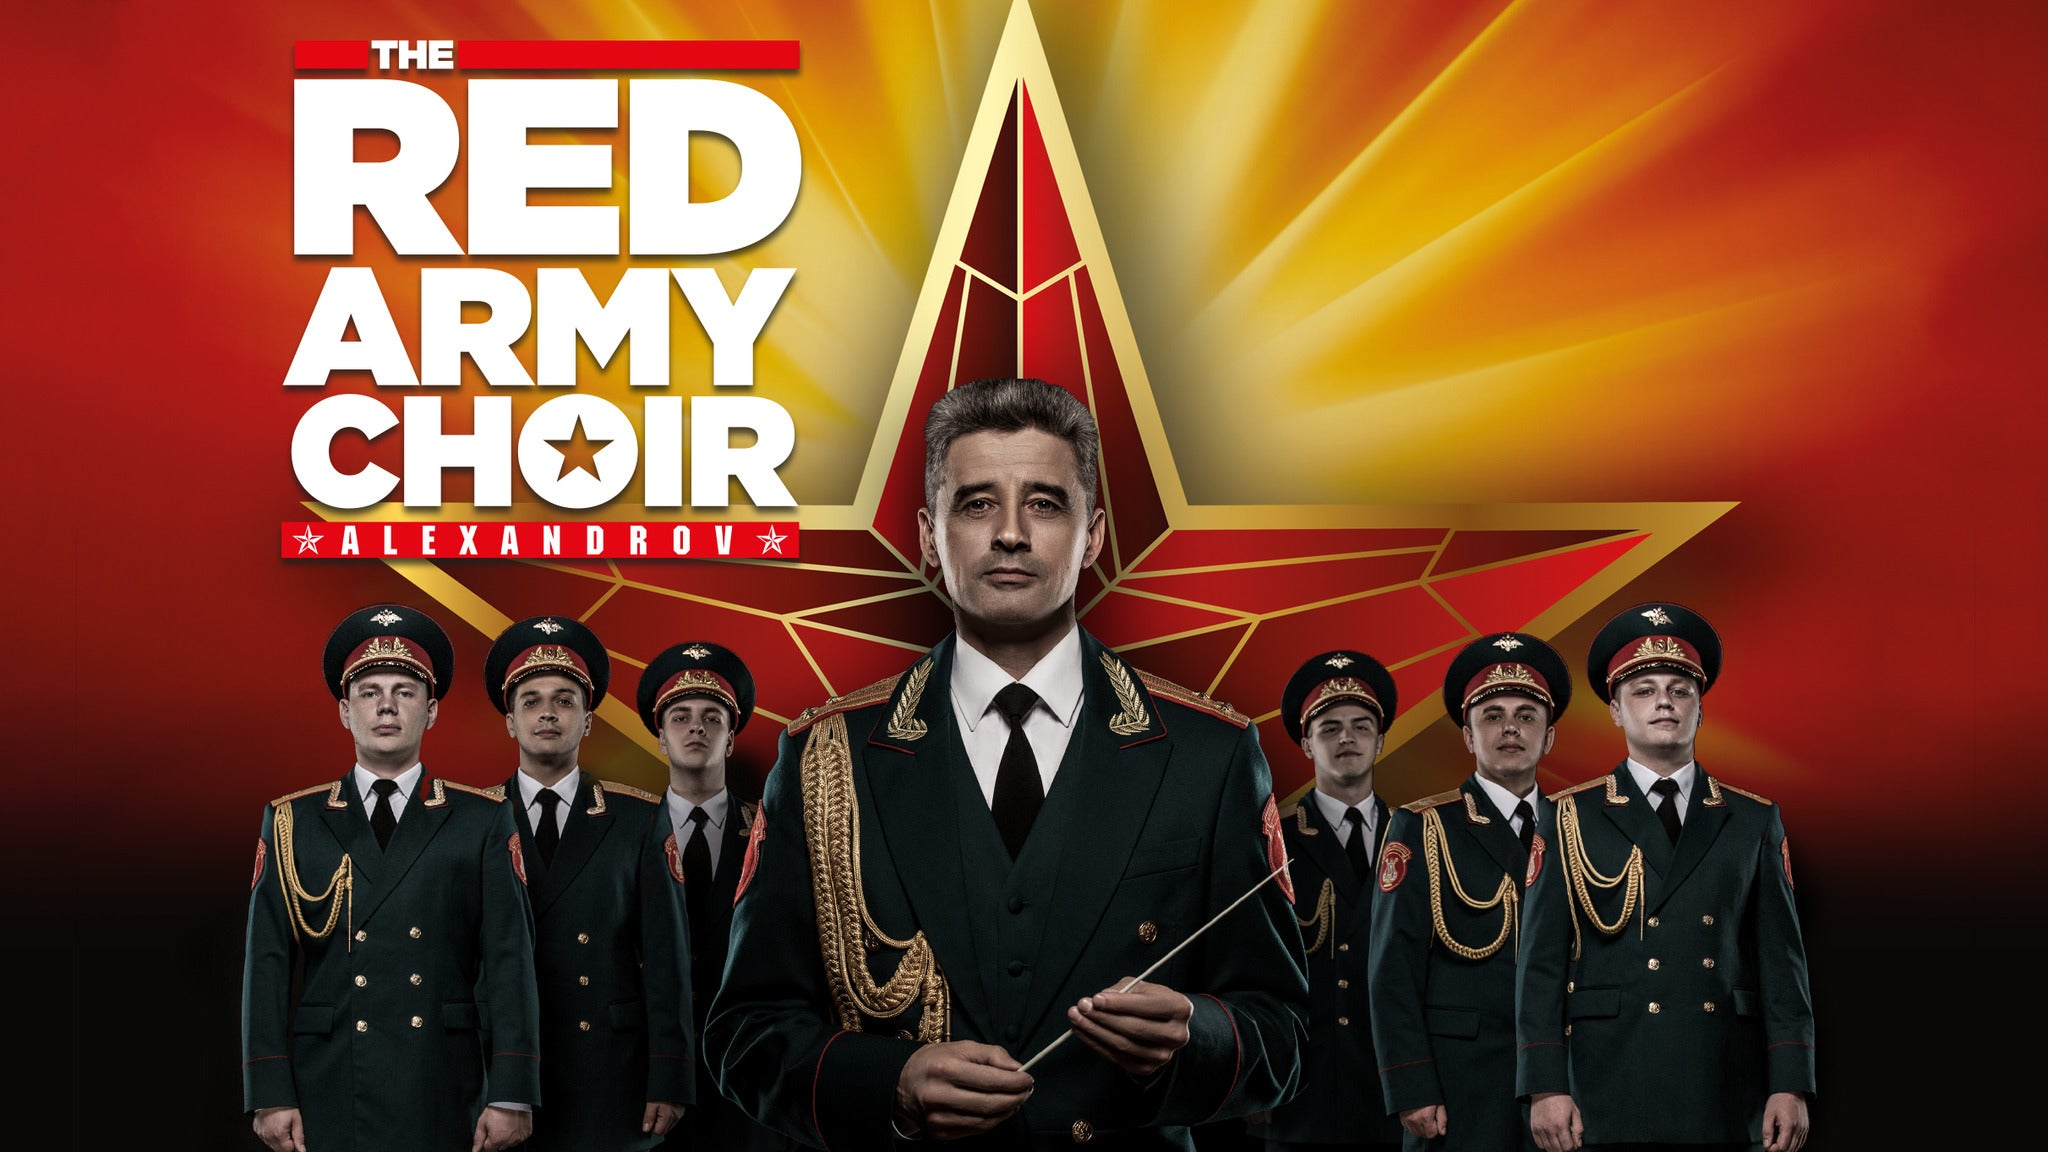 The Red Army Choir London Palladium Seating Plan